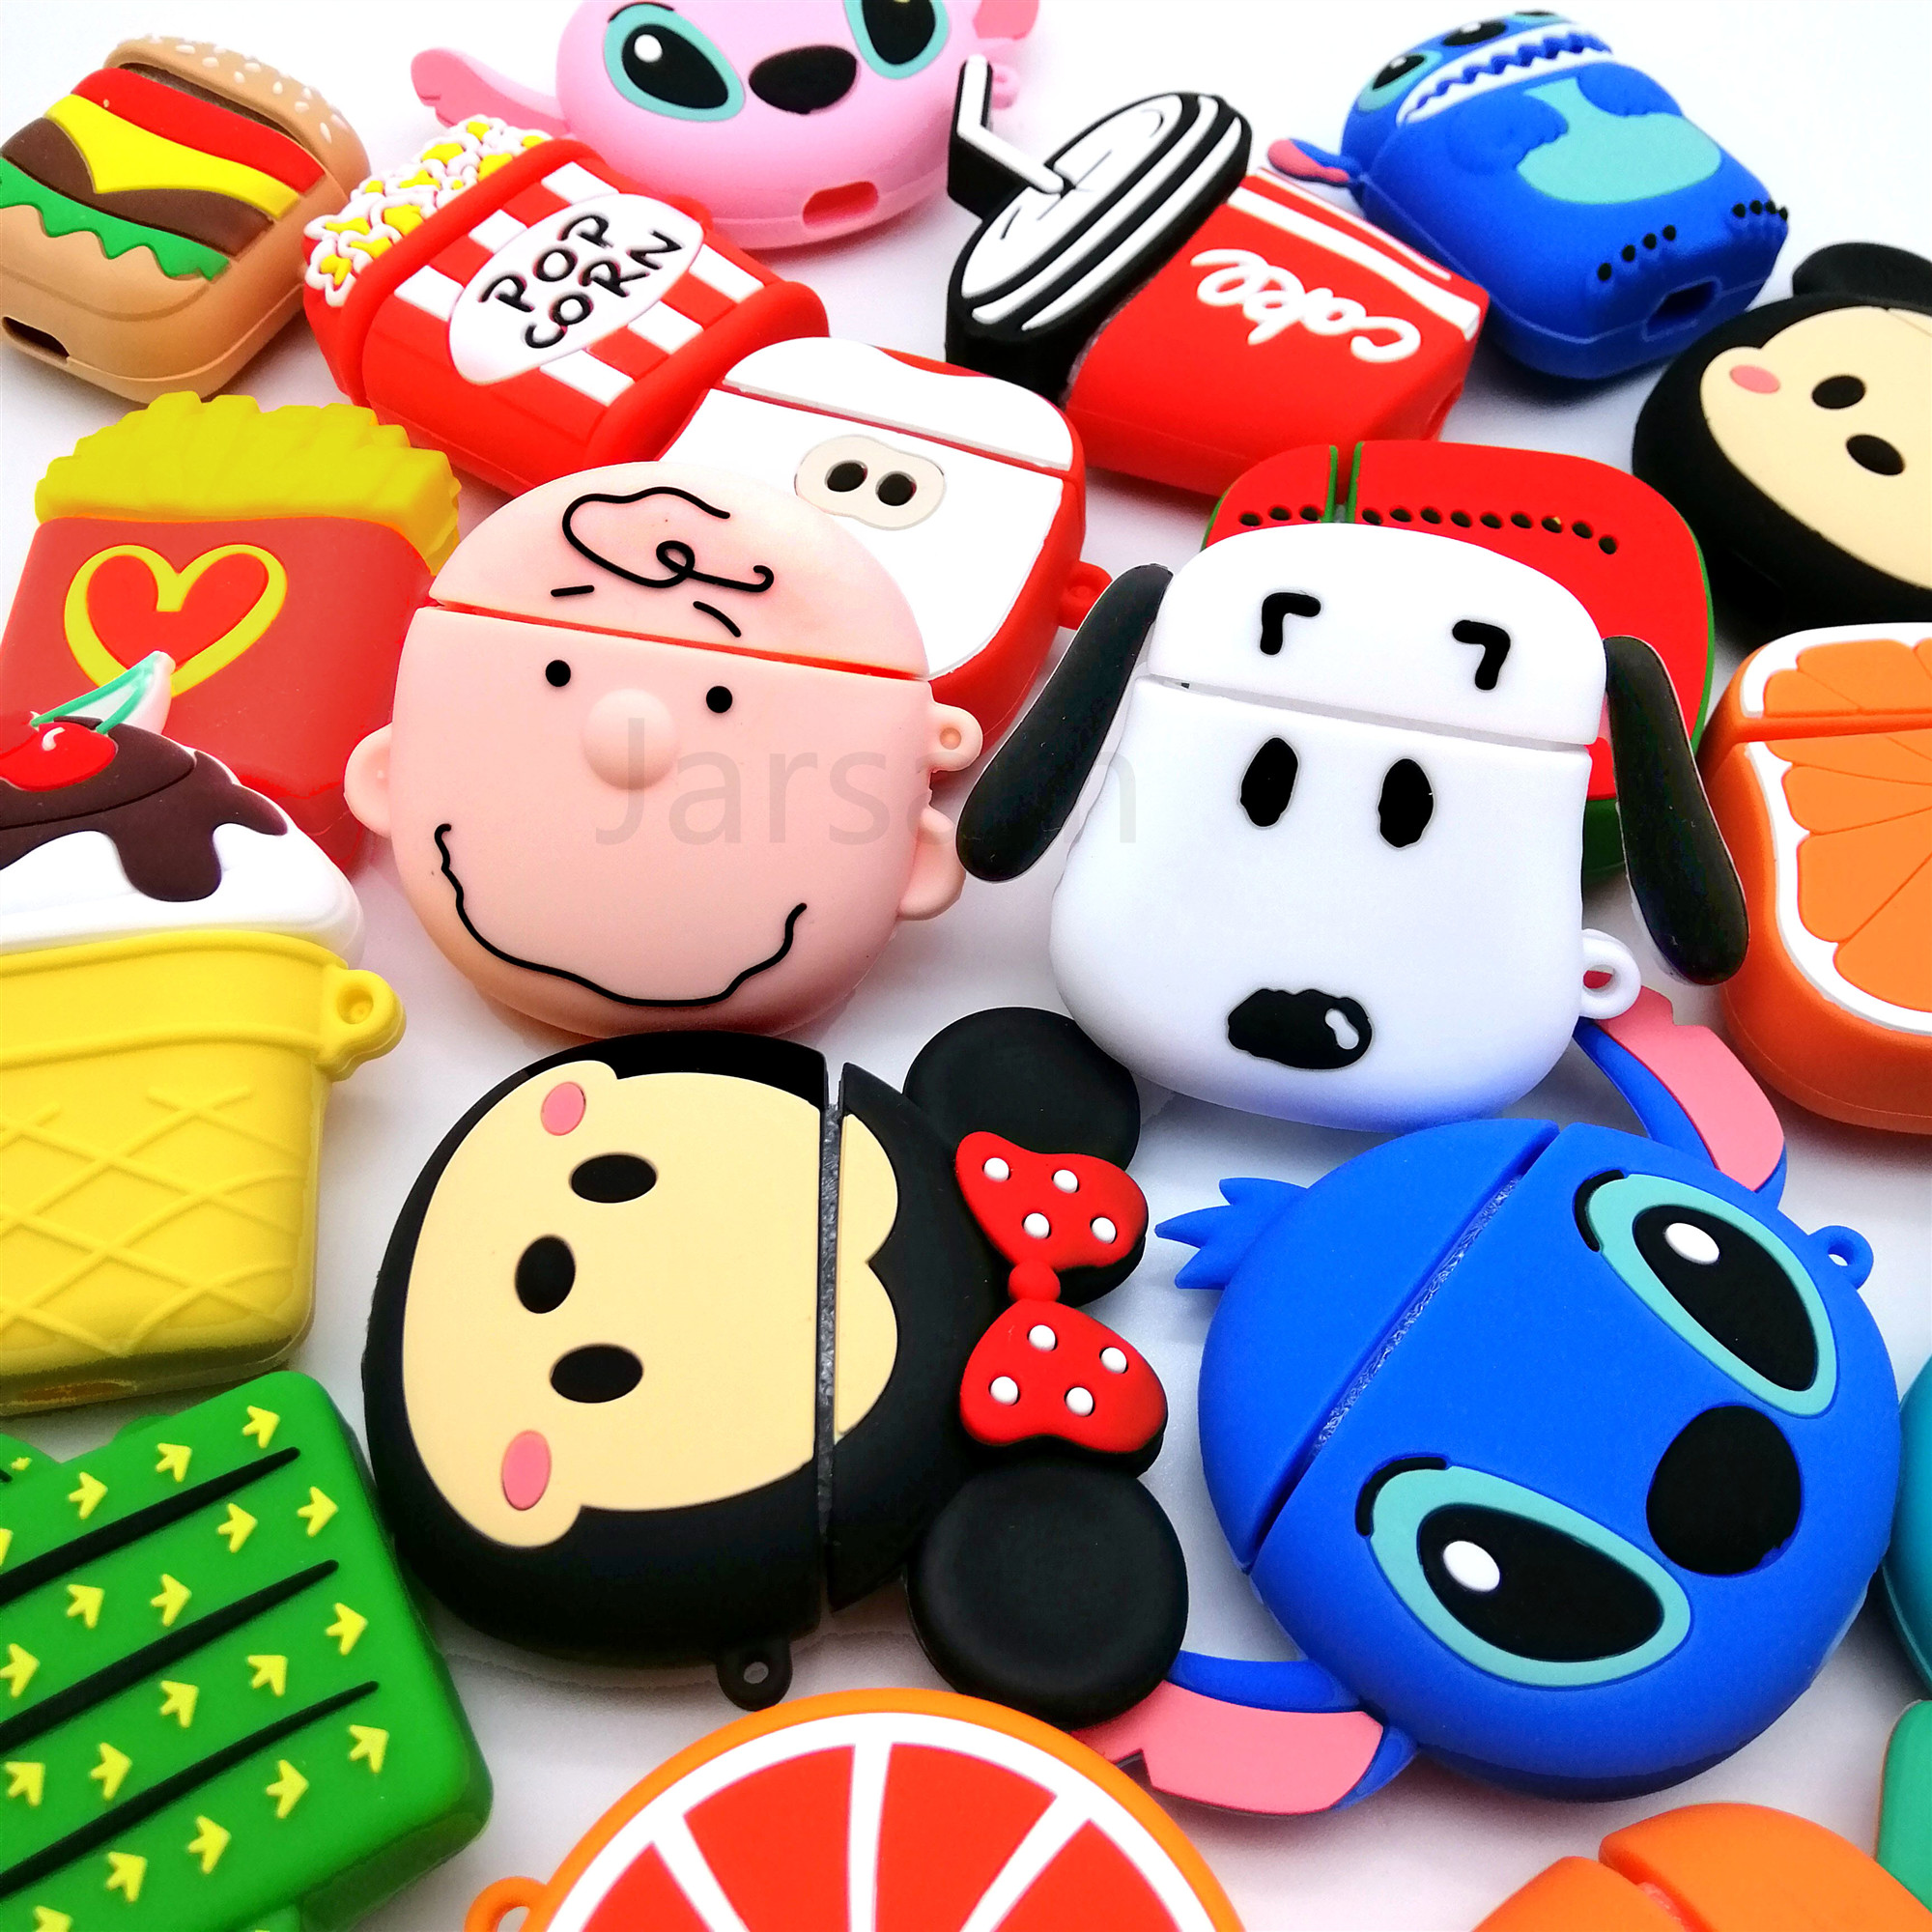 For Airpods Case Silicone Cartoon Cover For Apple Air Pods Cute Earphone Case Headphone Case For Earpods Accessories